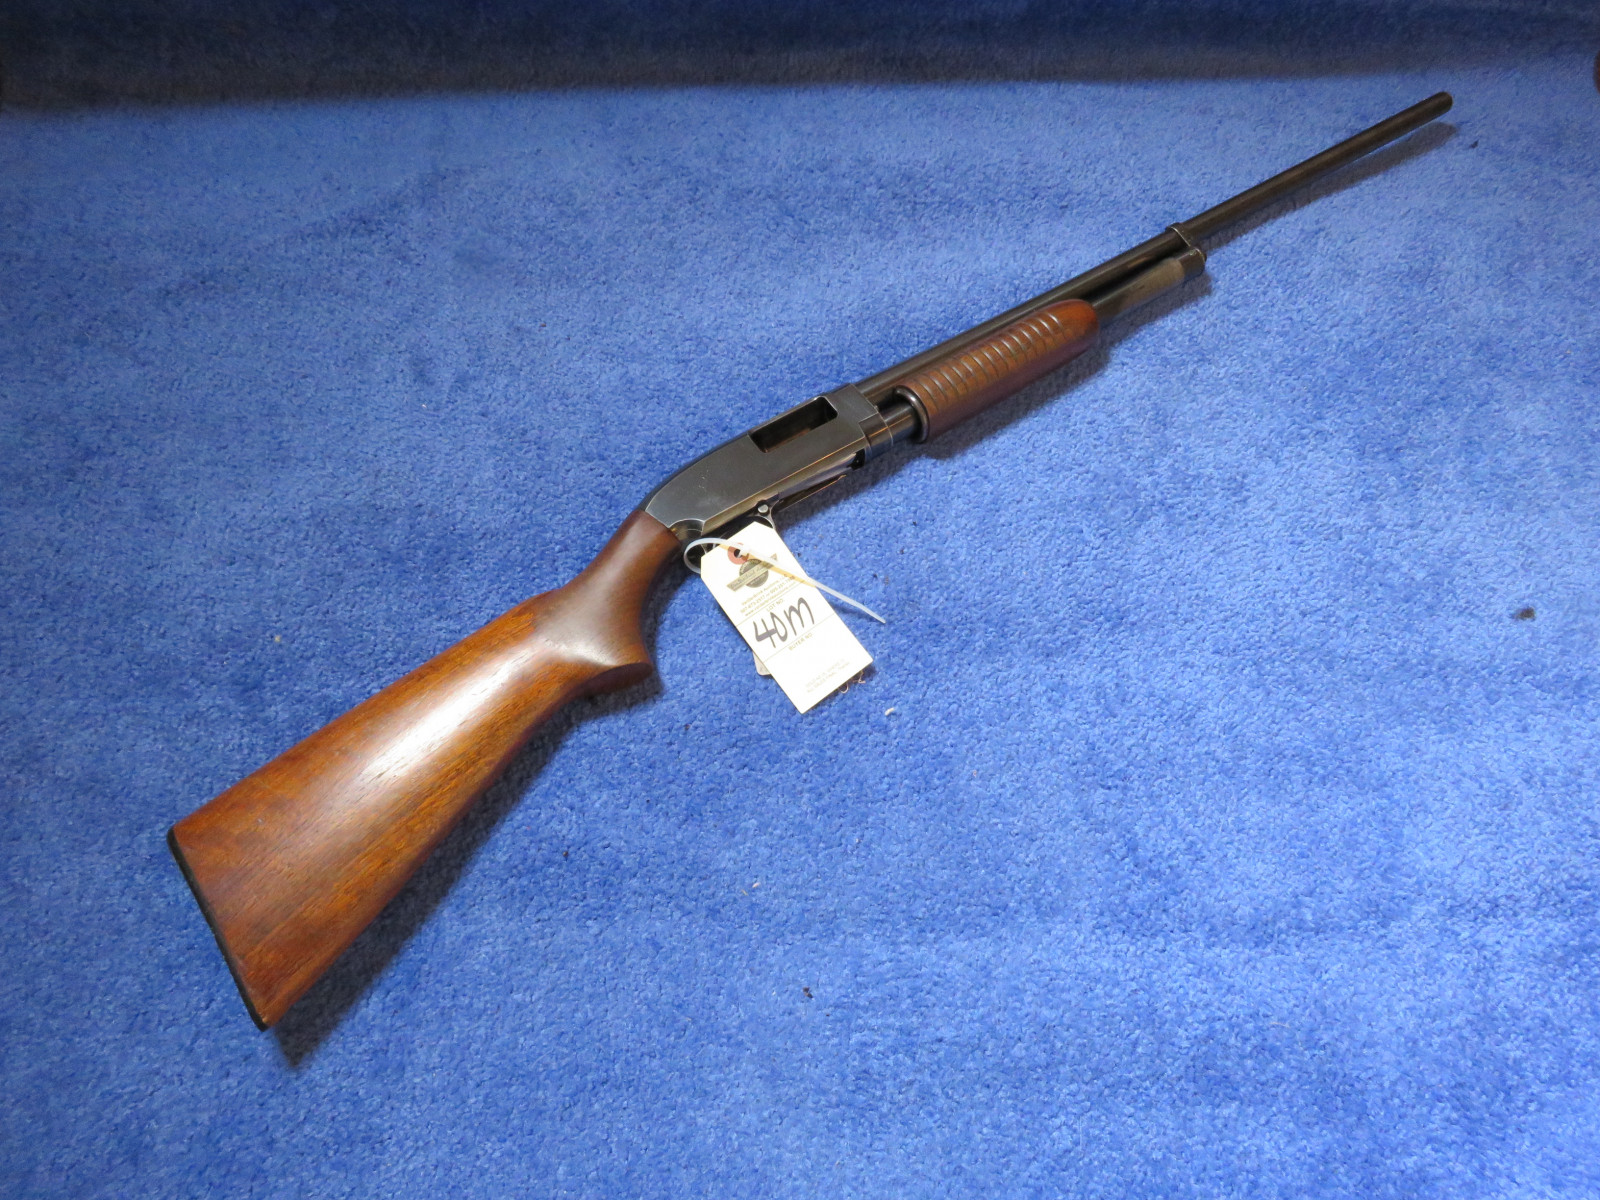 Winchester Model 25 12 Gauge Shotgun - Image 1